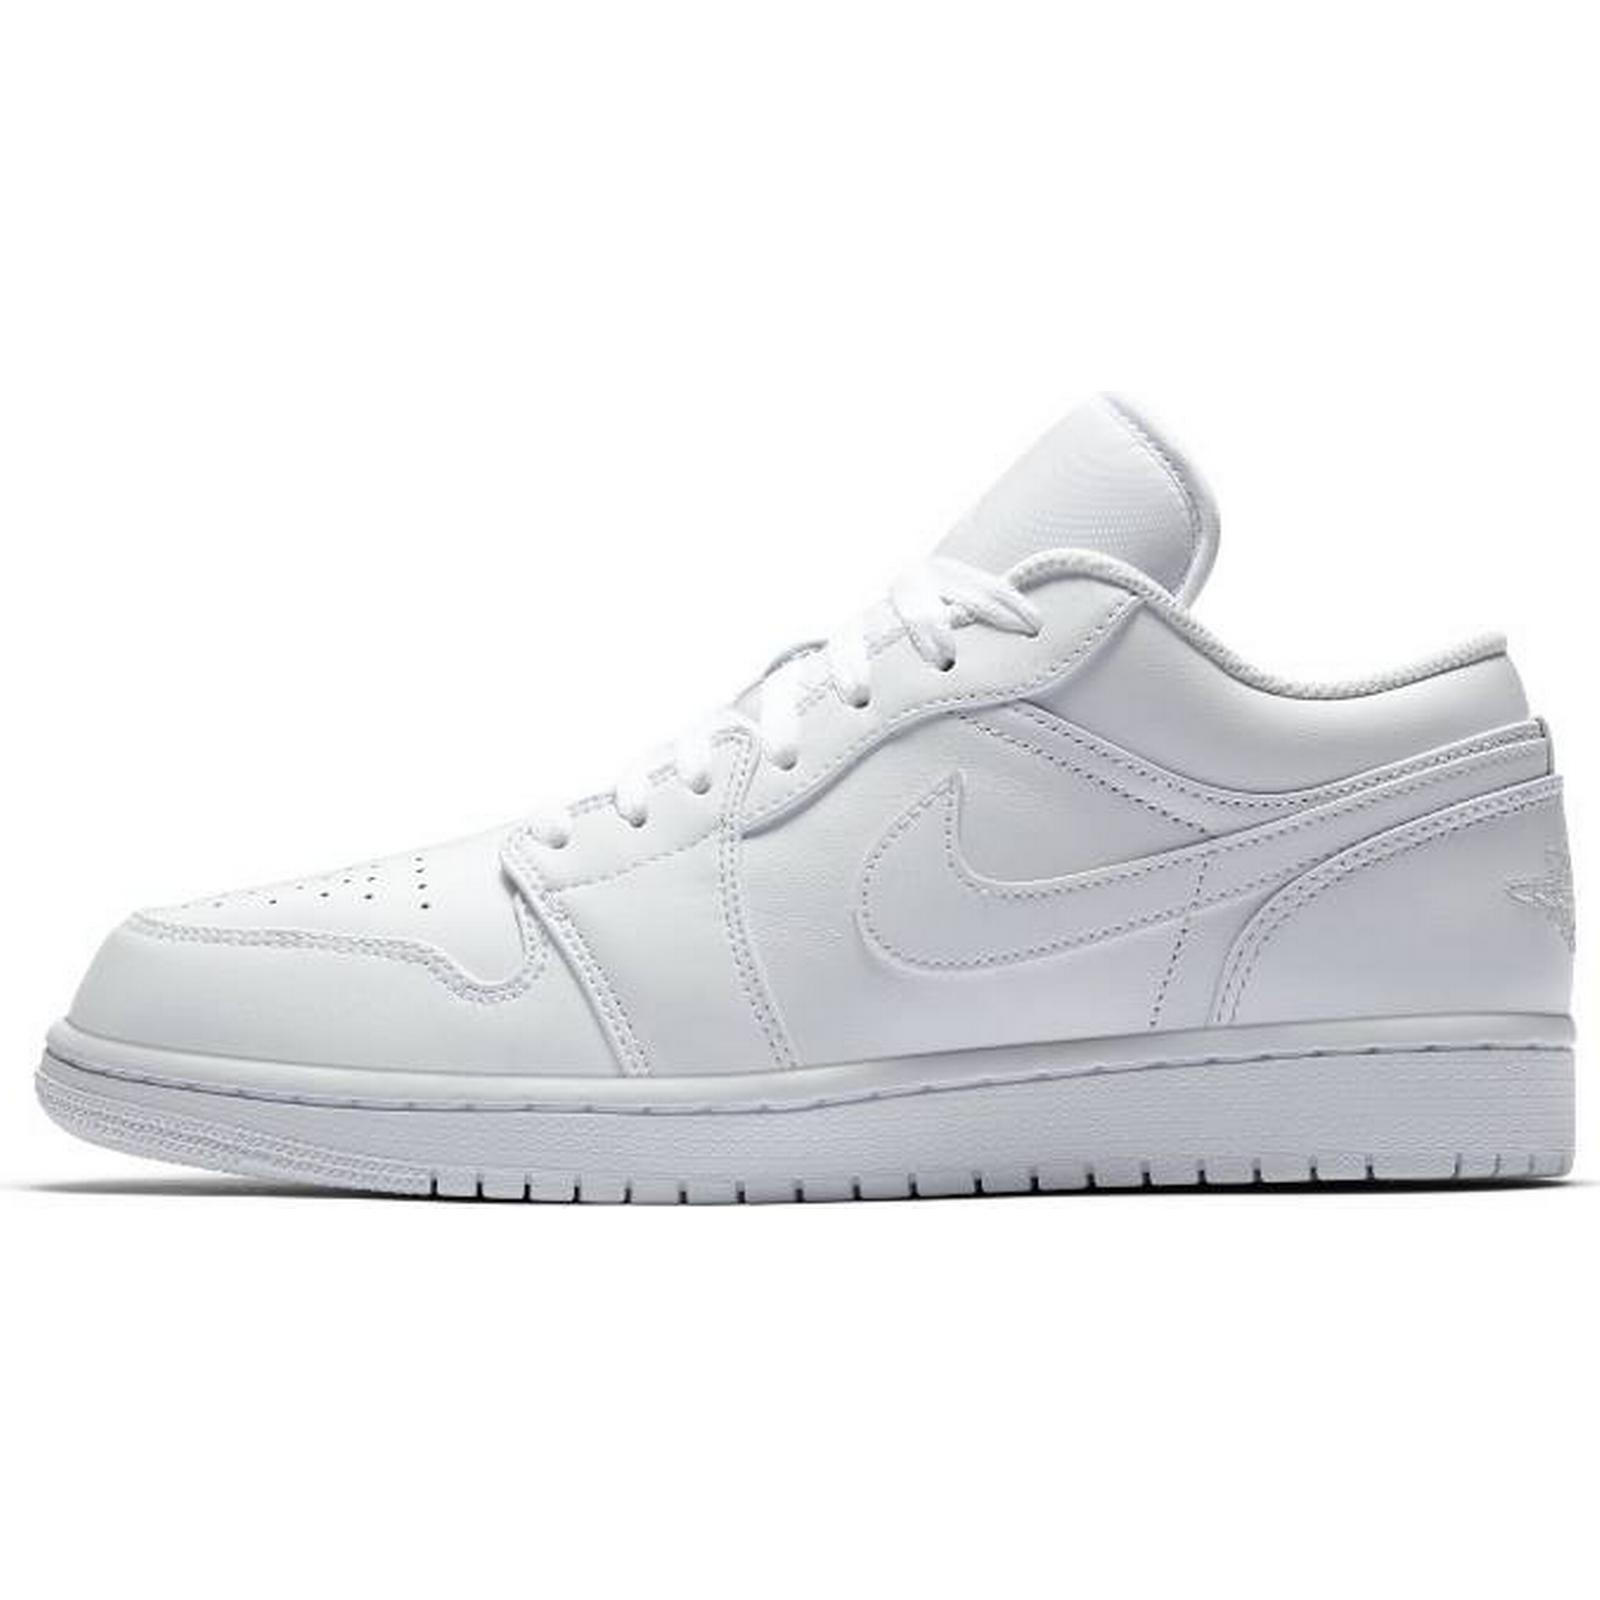 Gentlemen/Ladies-NIKE Buty Męskie Outstanding Air Jordan 1 Low- Outstanding Męskie features 81ae68